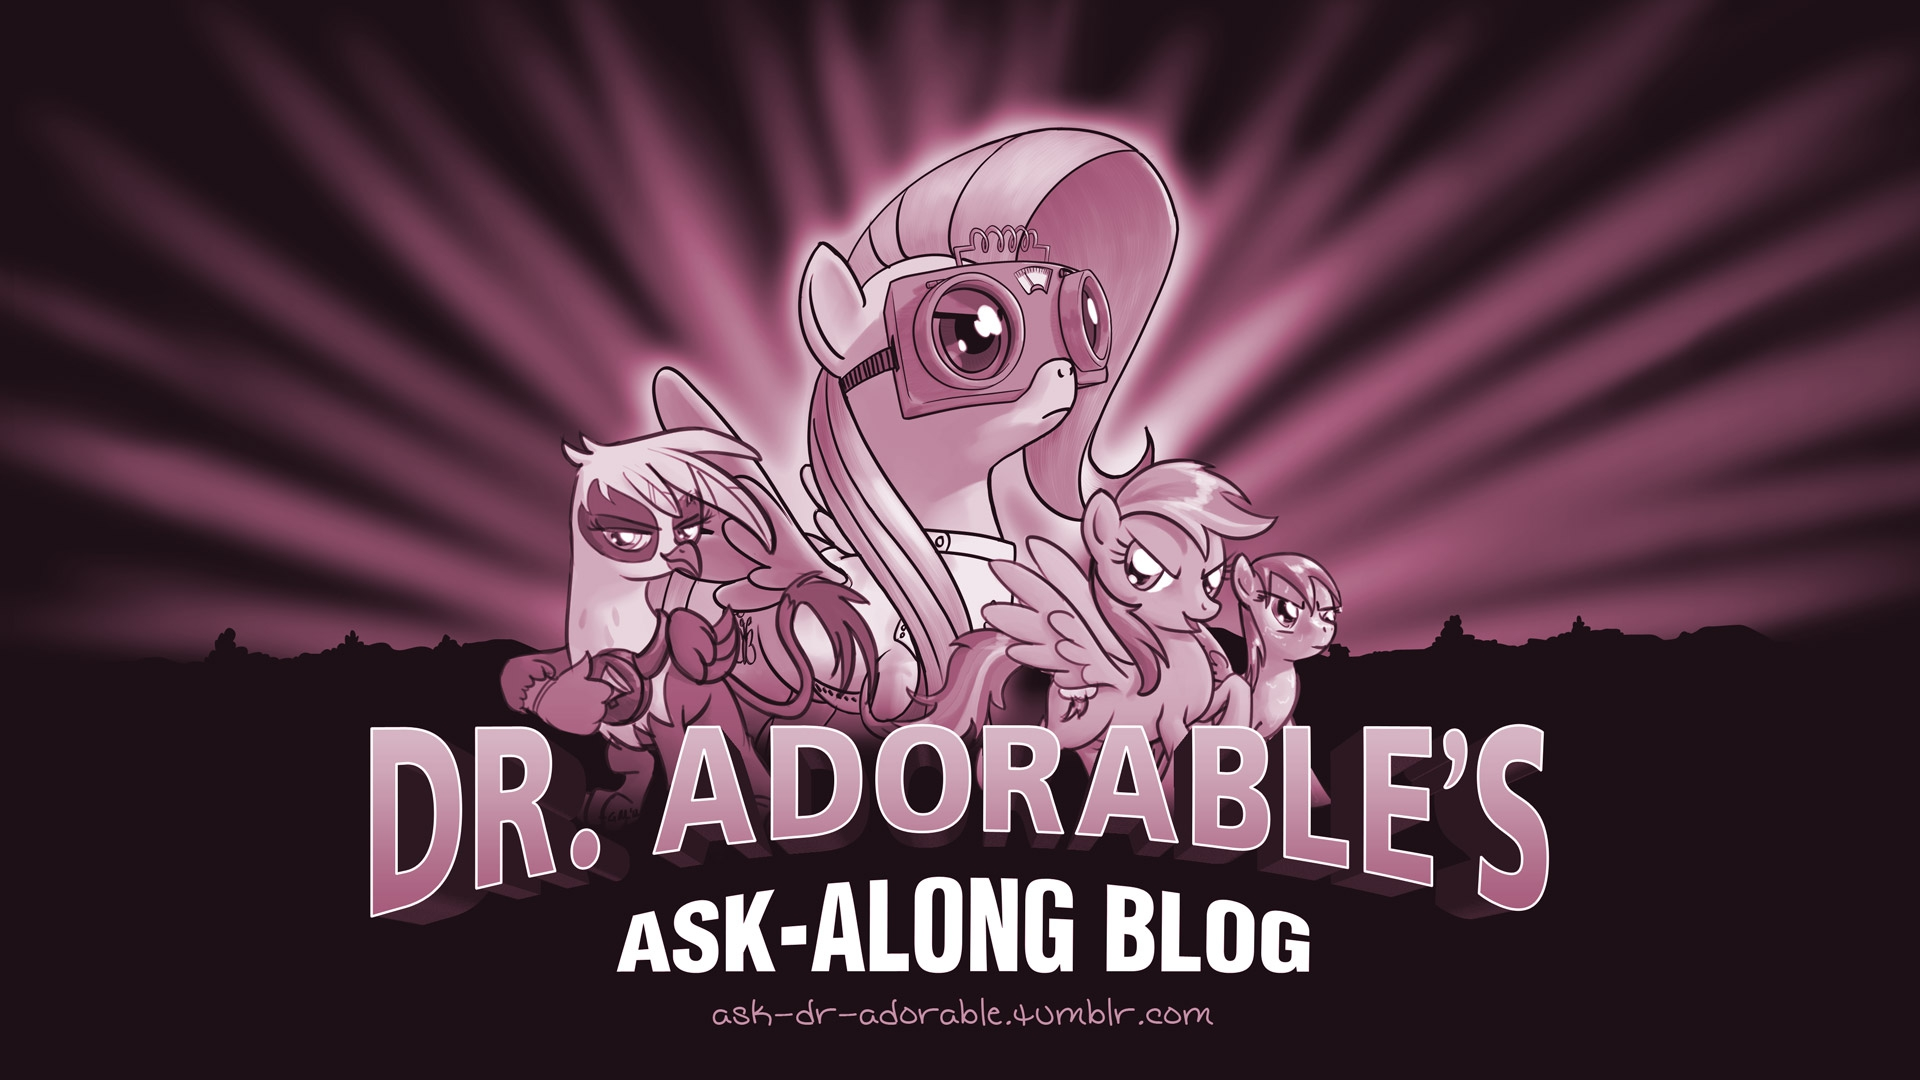 dr adorables